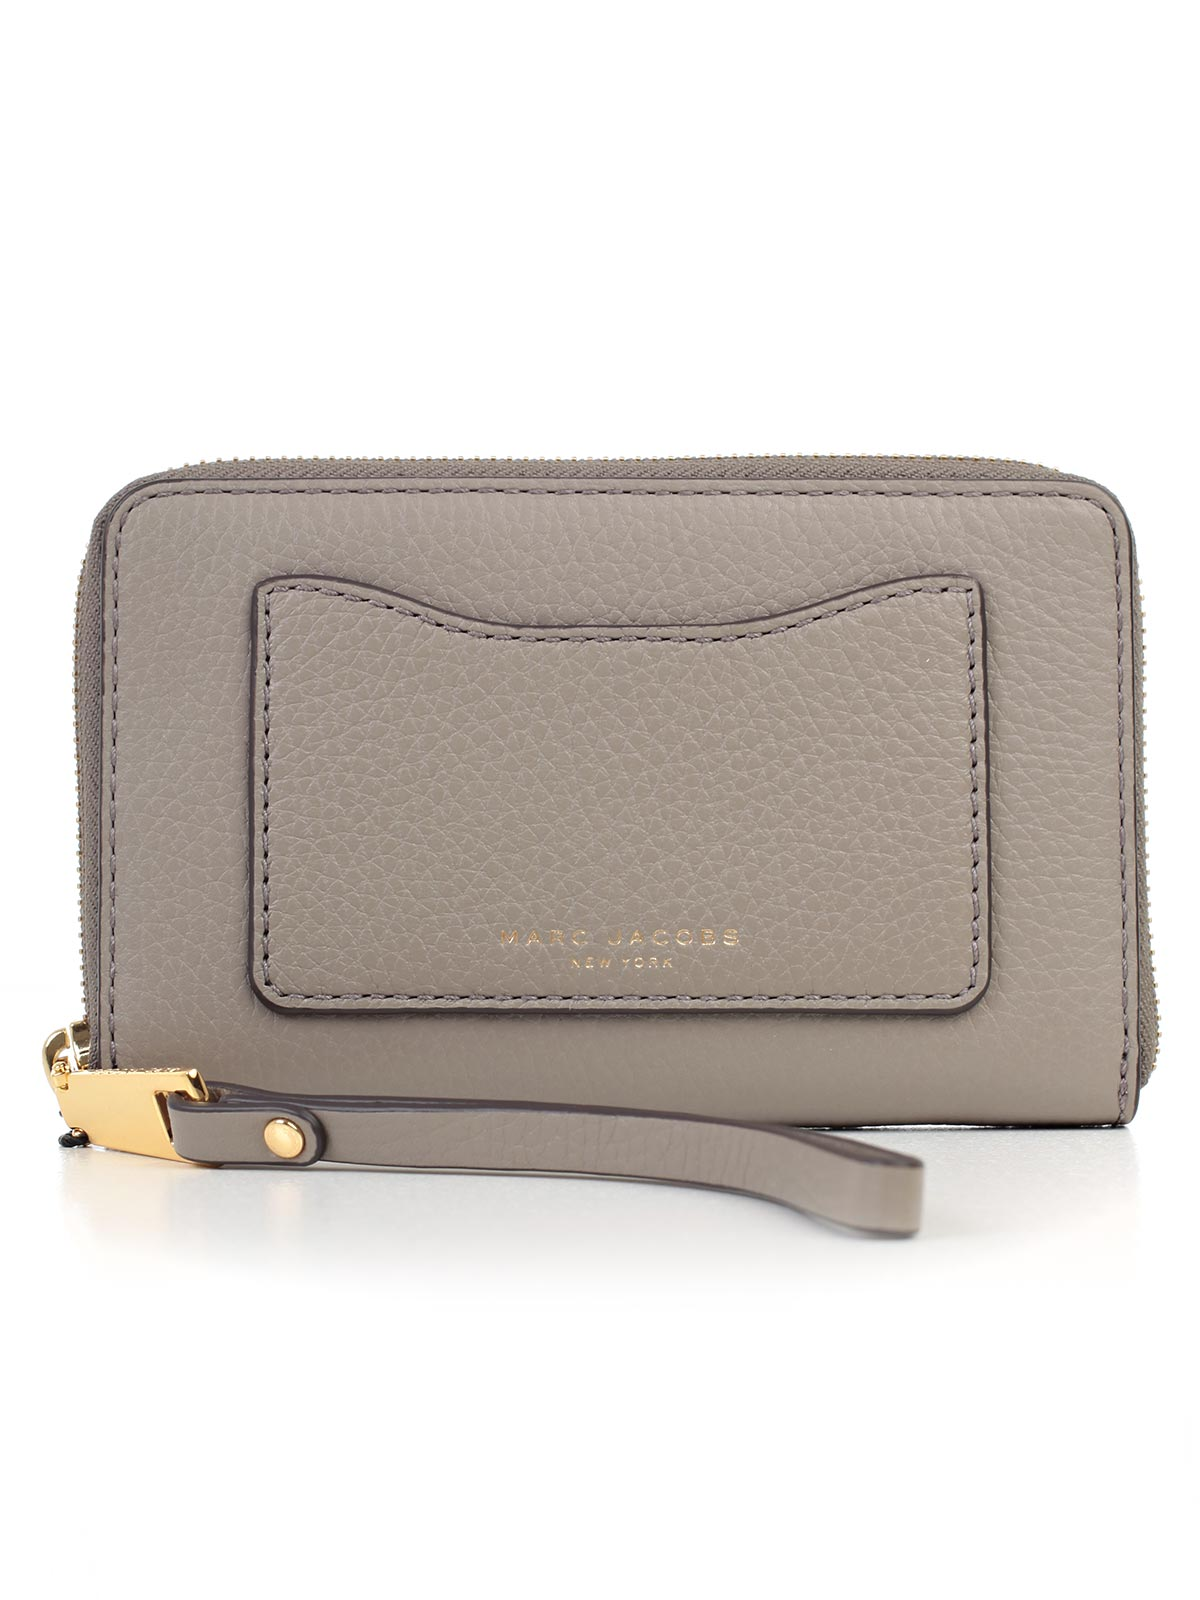 Picture of MARC JACOBS SMALL LEATHER GOODS